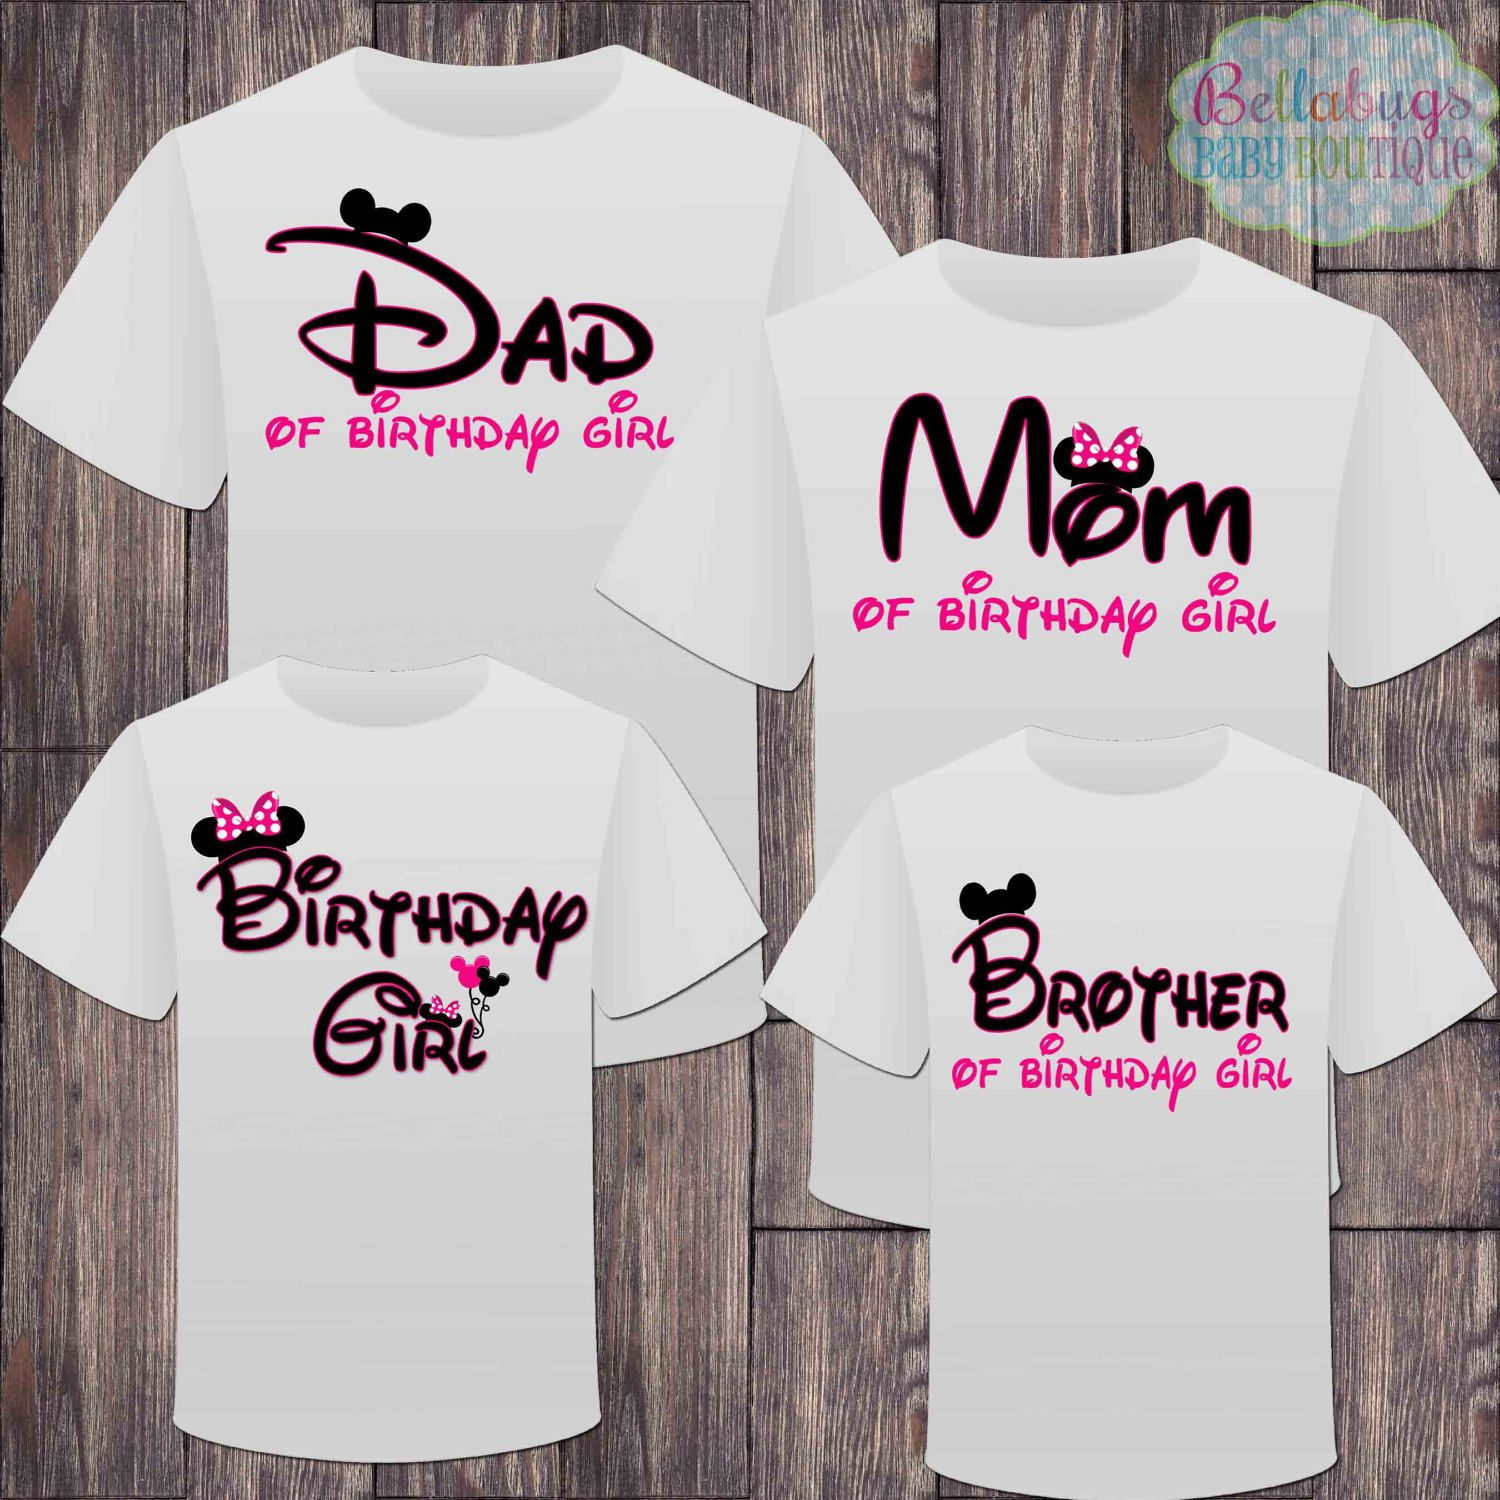 6e893714c Matching Disney Family Girl Birthday Tshirts - Mickey Minnie Mouse Birthday  Girl - Disney Inspired - Matching Birthday Shirts - Minnie Mouse by ...